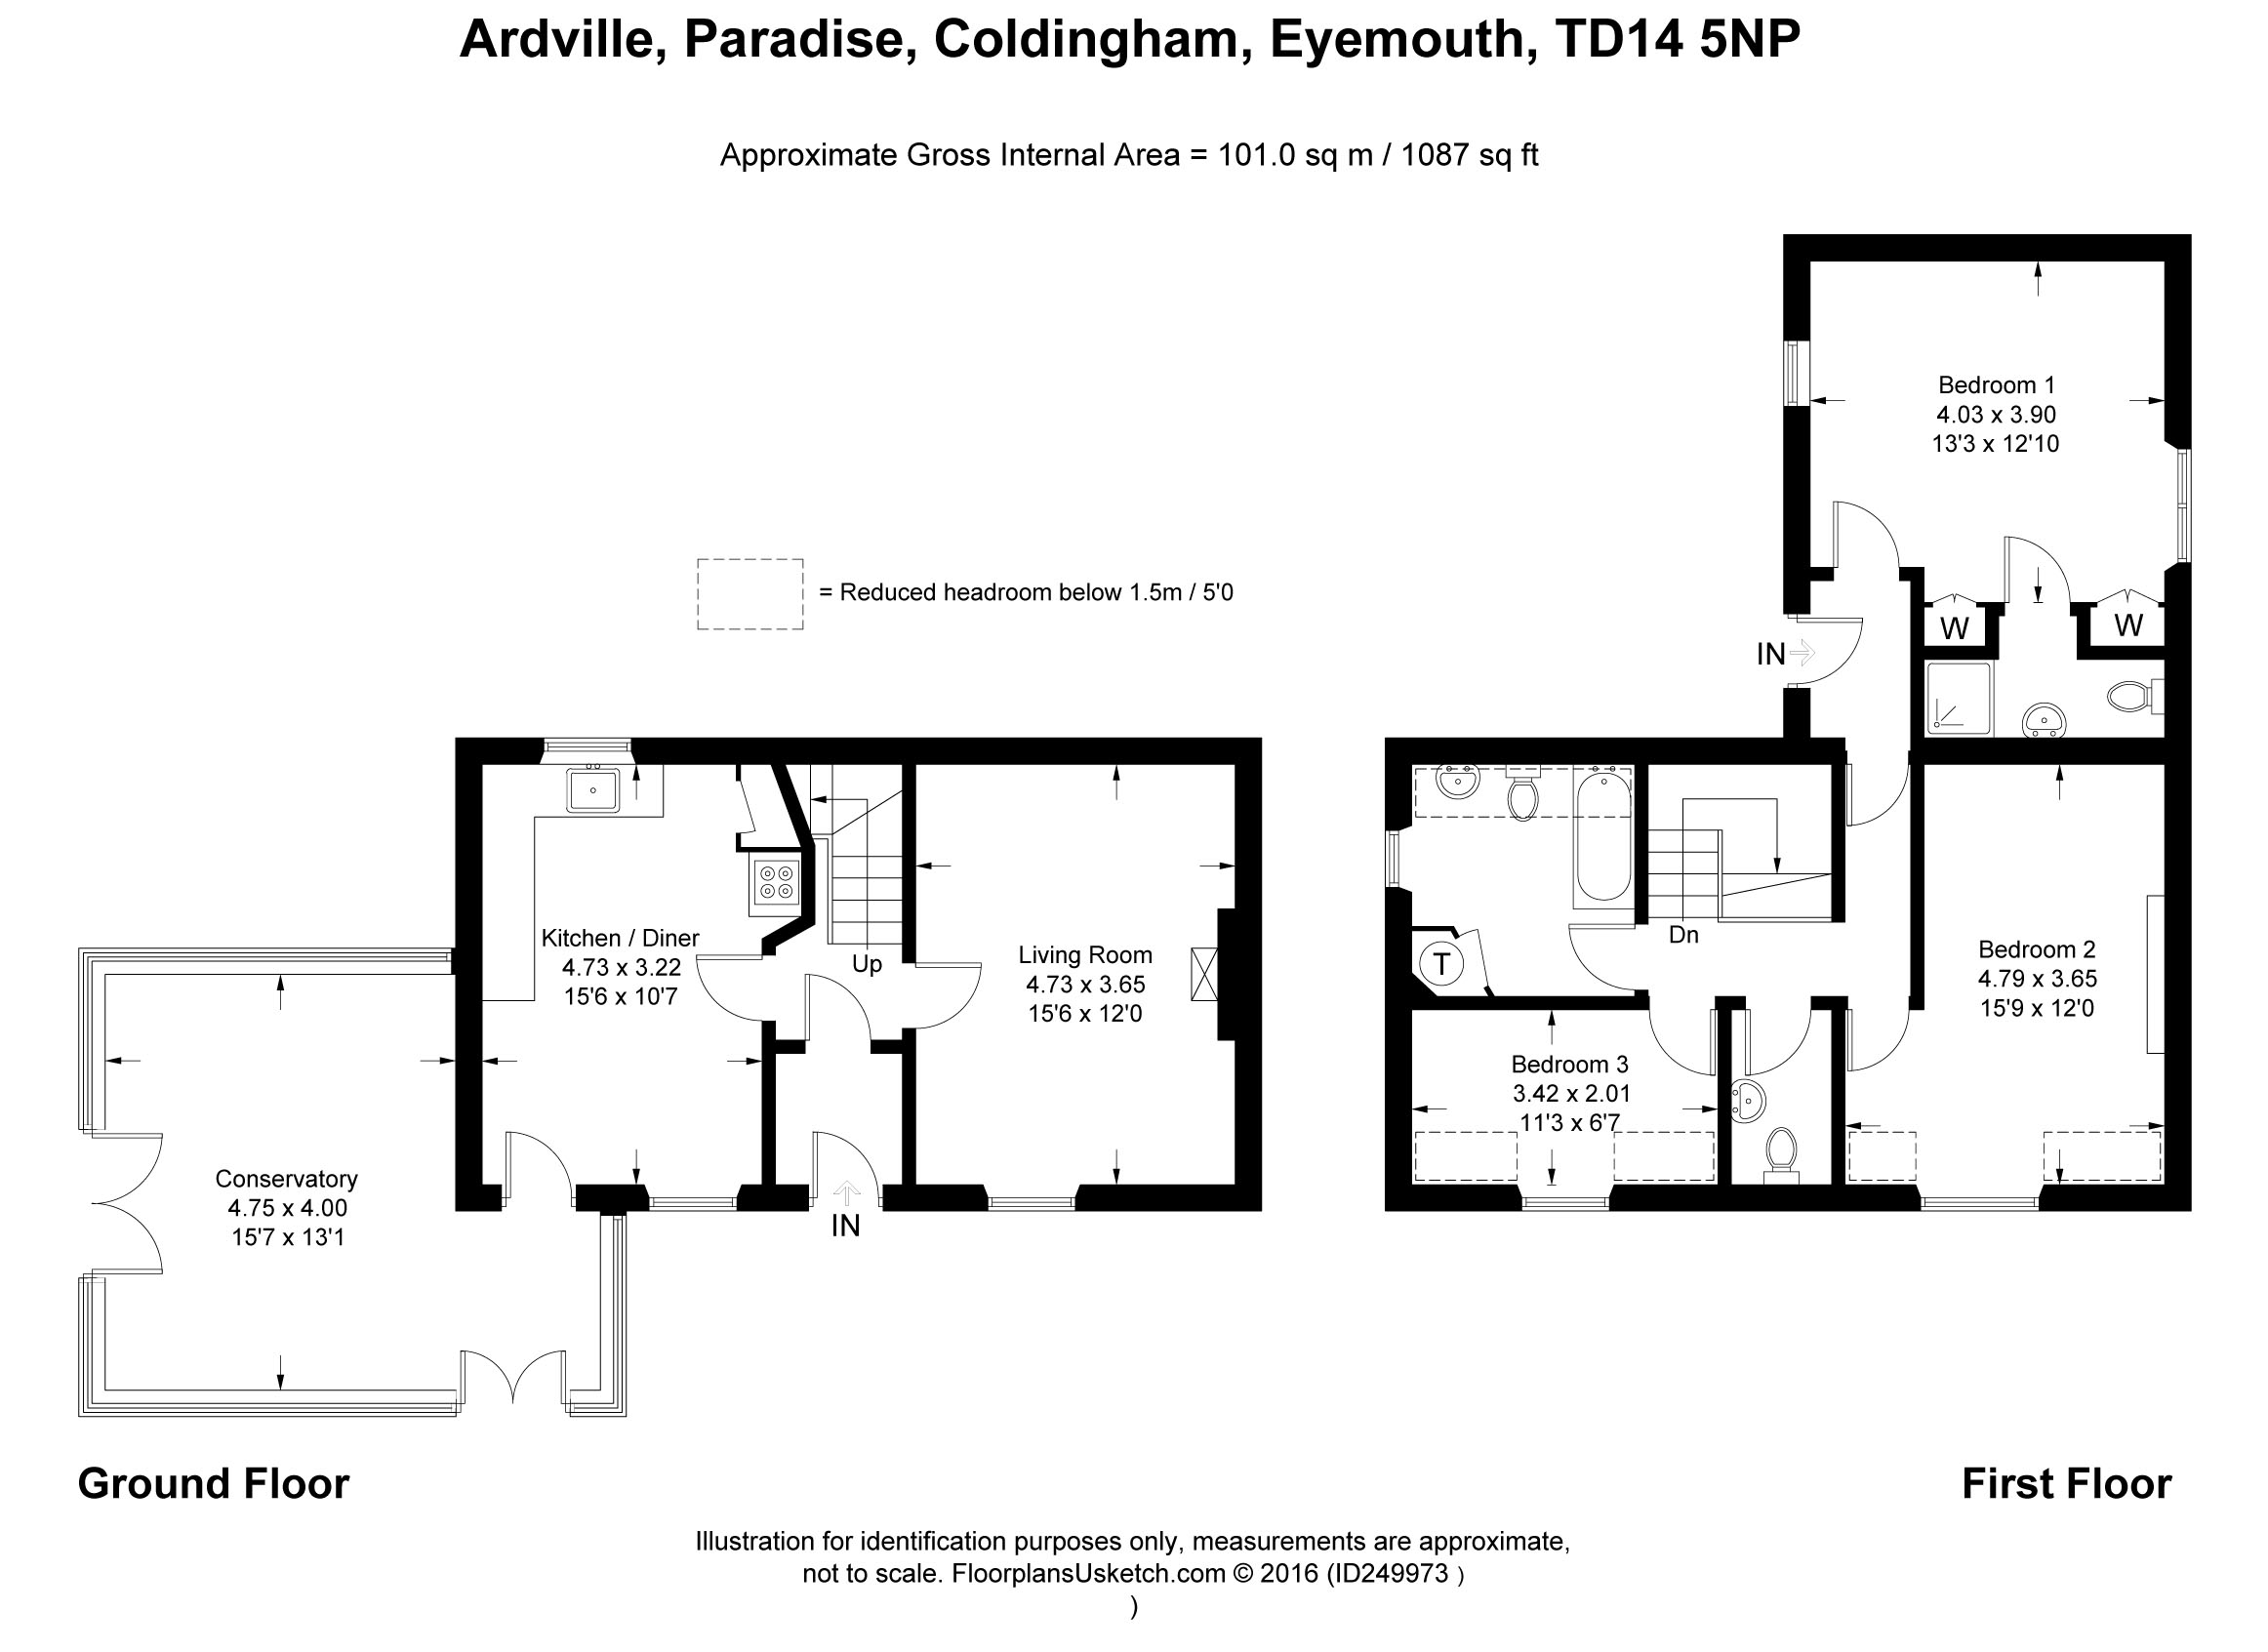 Floorplans for Paradise Lane, Coldingham, Berwickshire, TD14